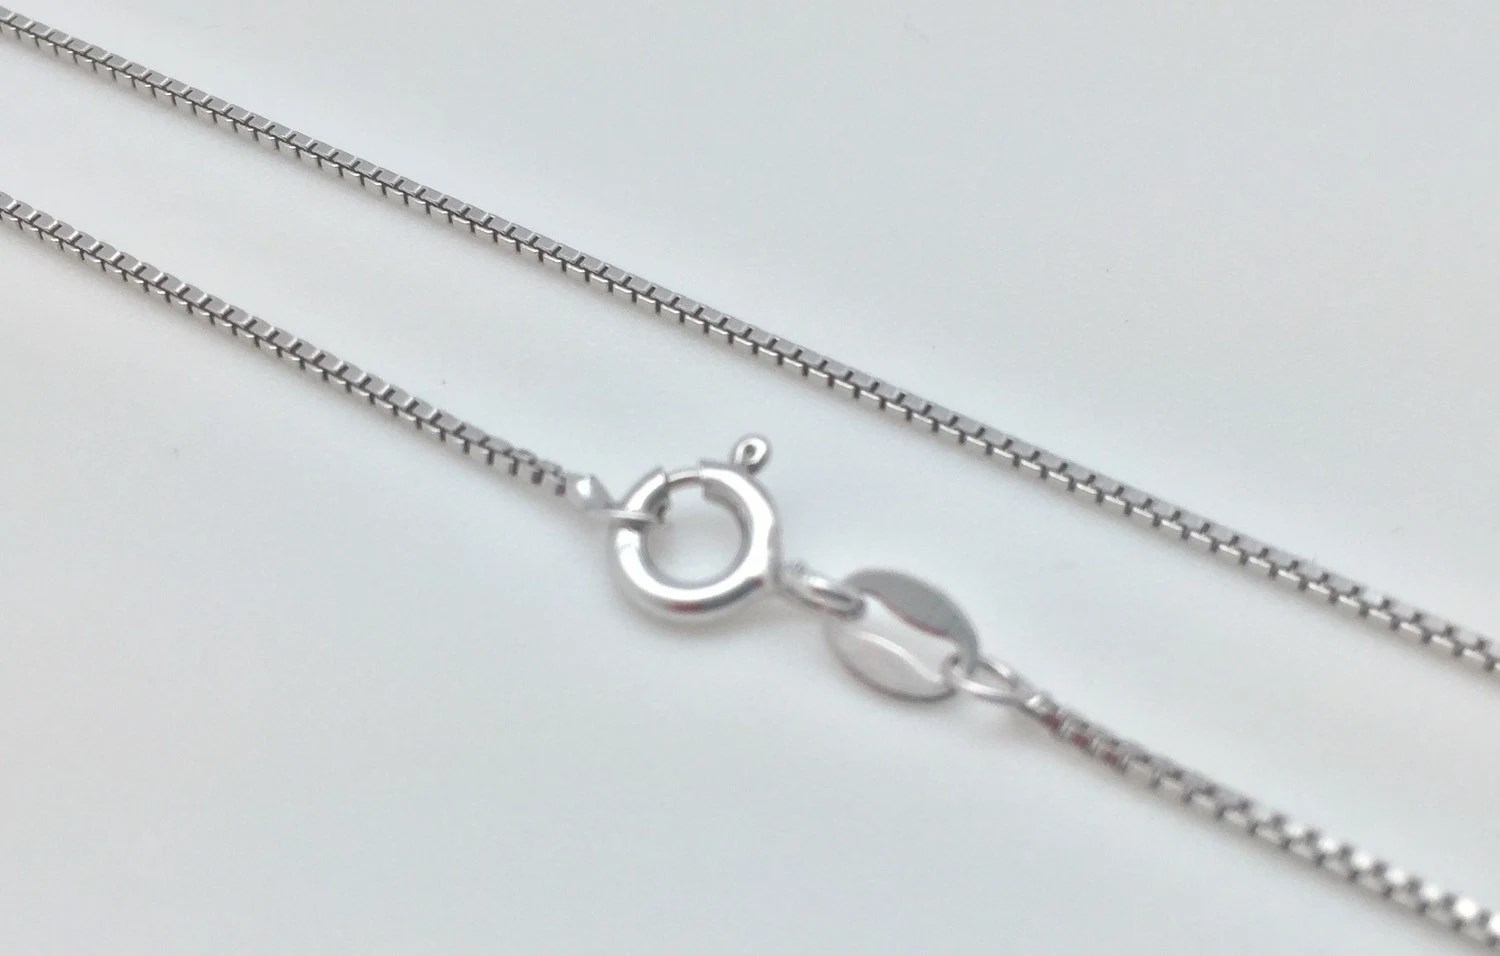 18 Silver Chain Thin Box Style // 925 Sterling Silver